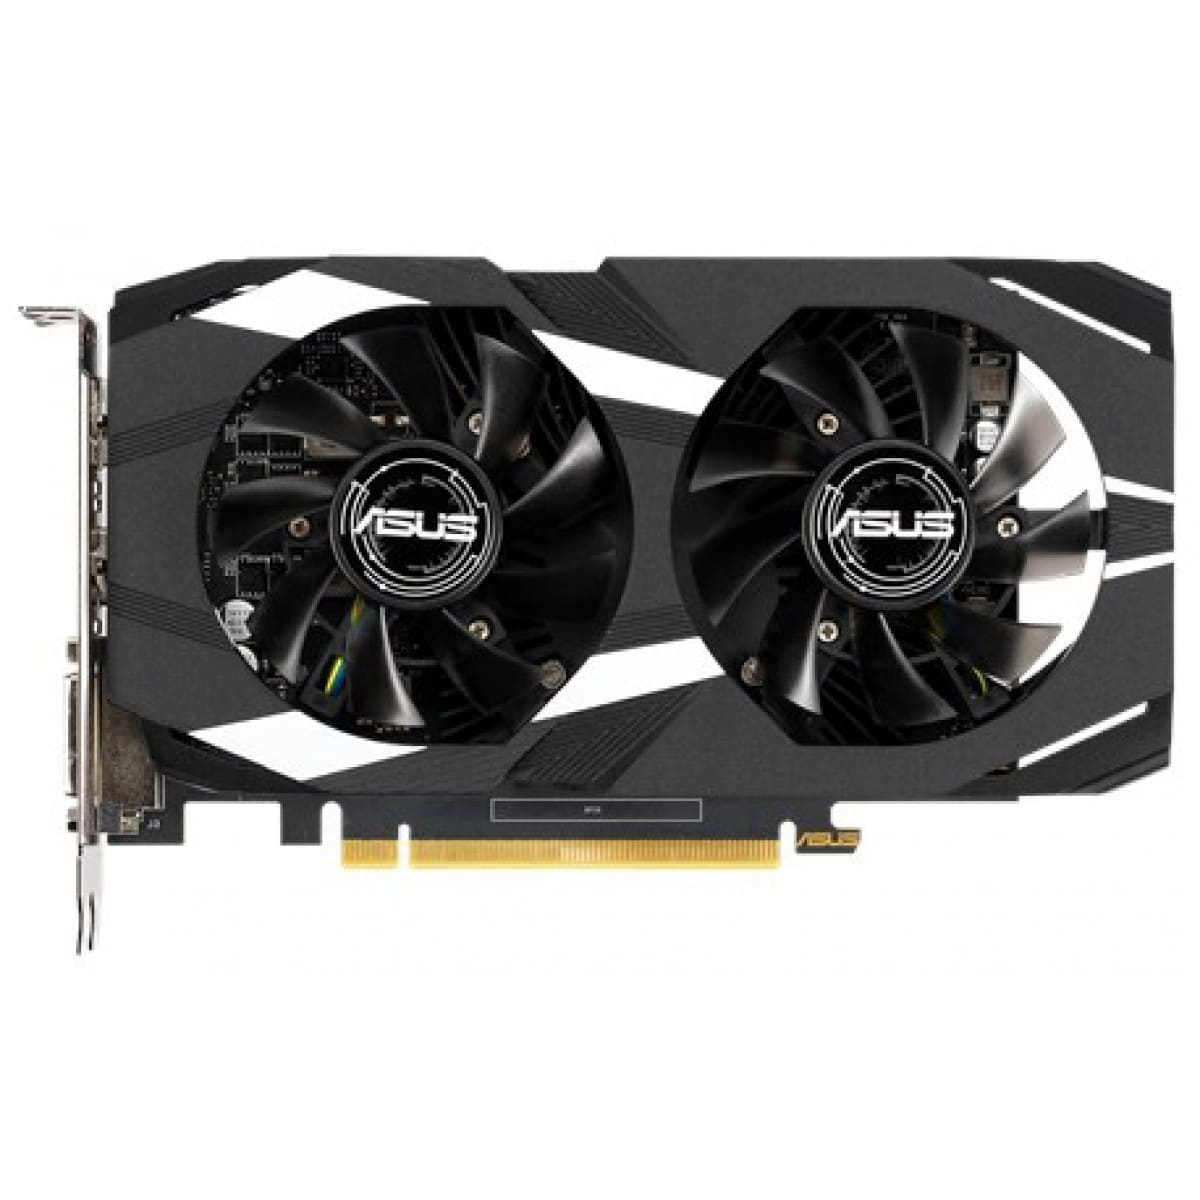 Placa de Vídeo Asus GeForce GTX 1650 4GB GDDR5 Dual Fan OC DUAL-GTX1650-O4G